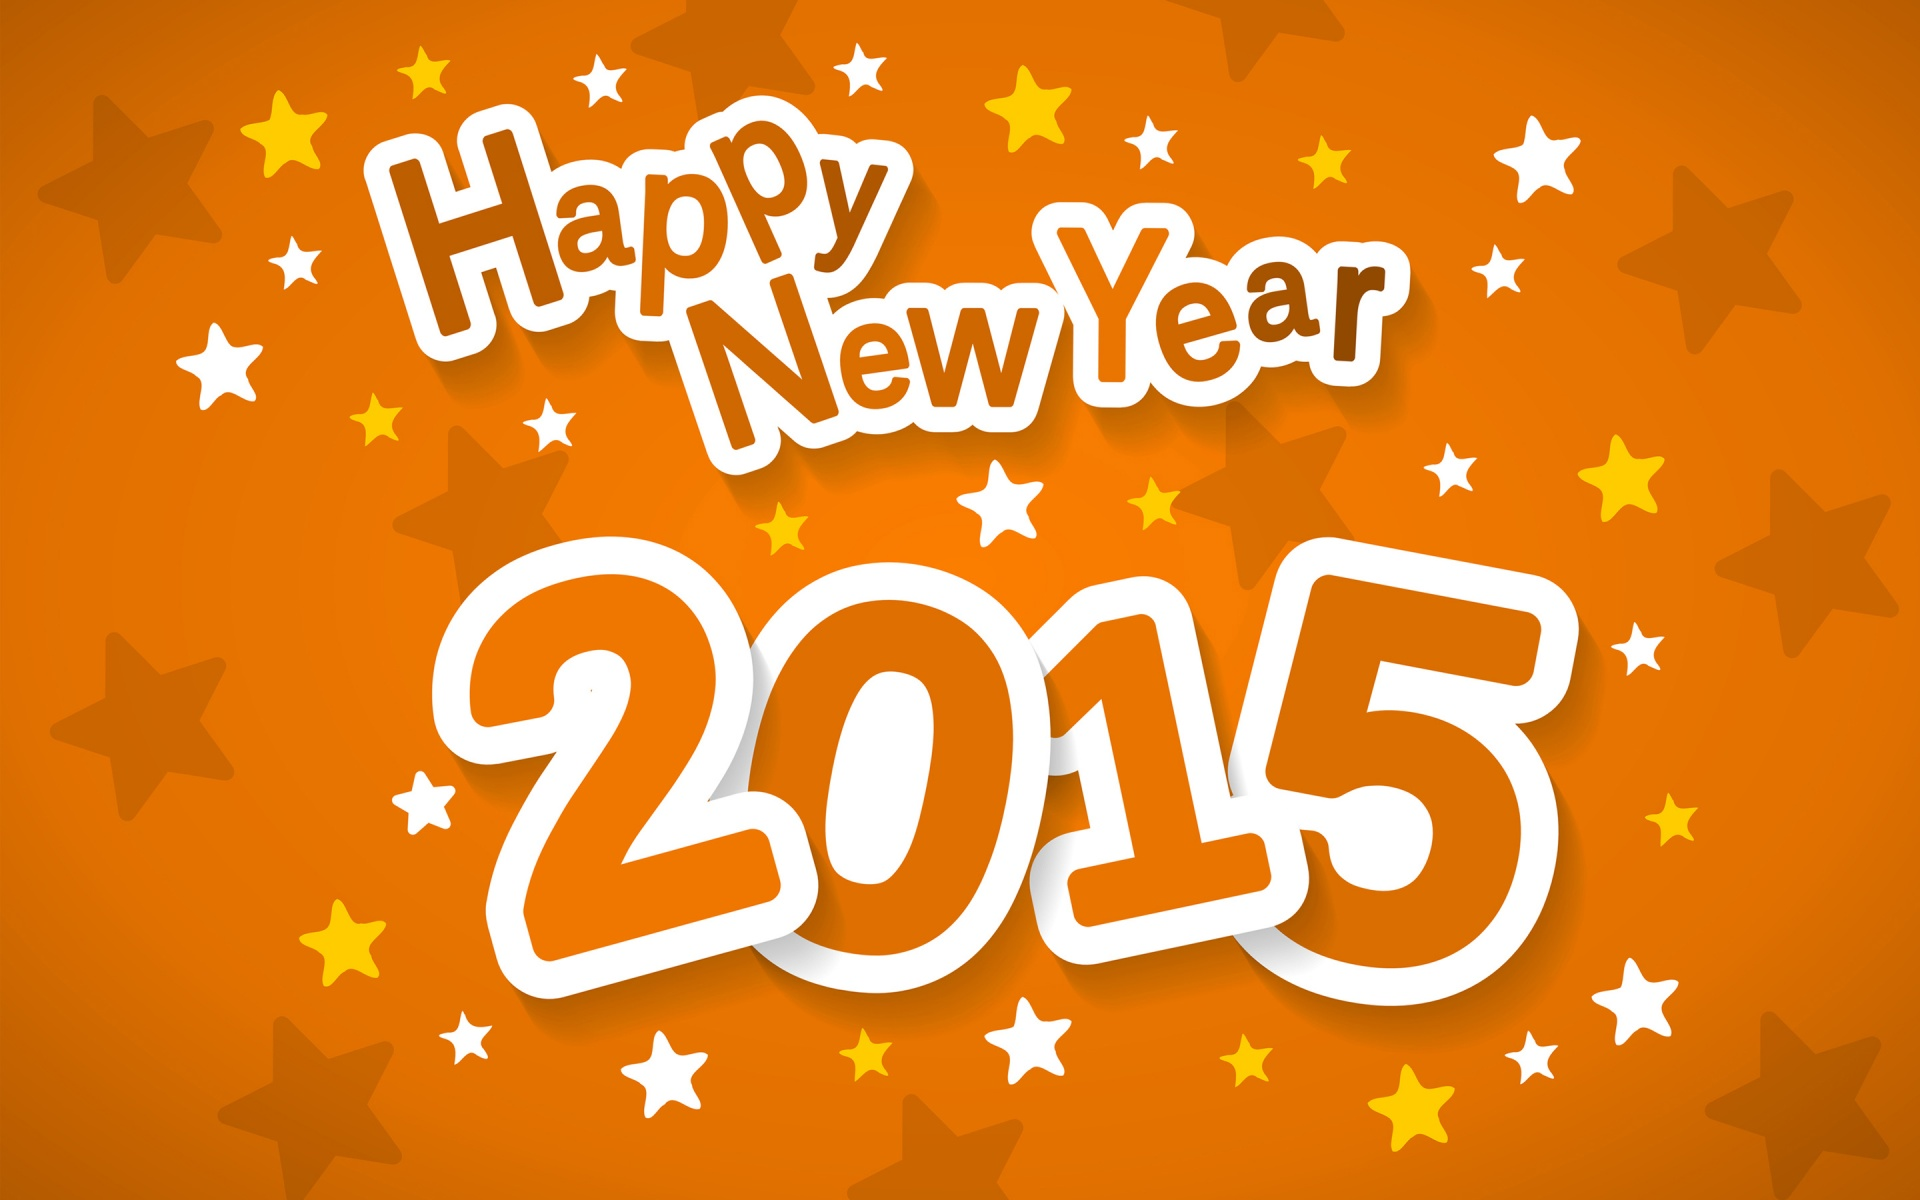 Happy New Year 2015 Wallpapers In Jpg Format For Free Download